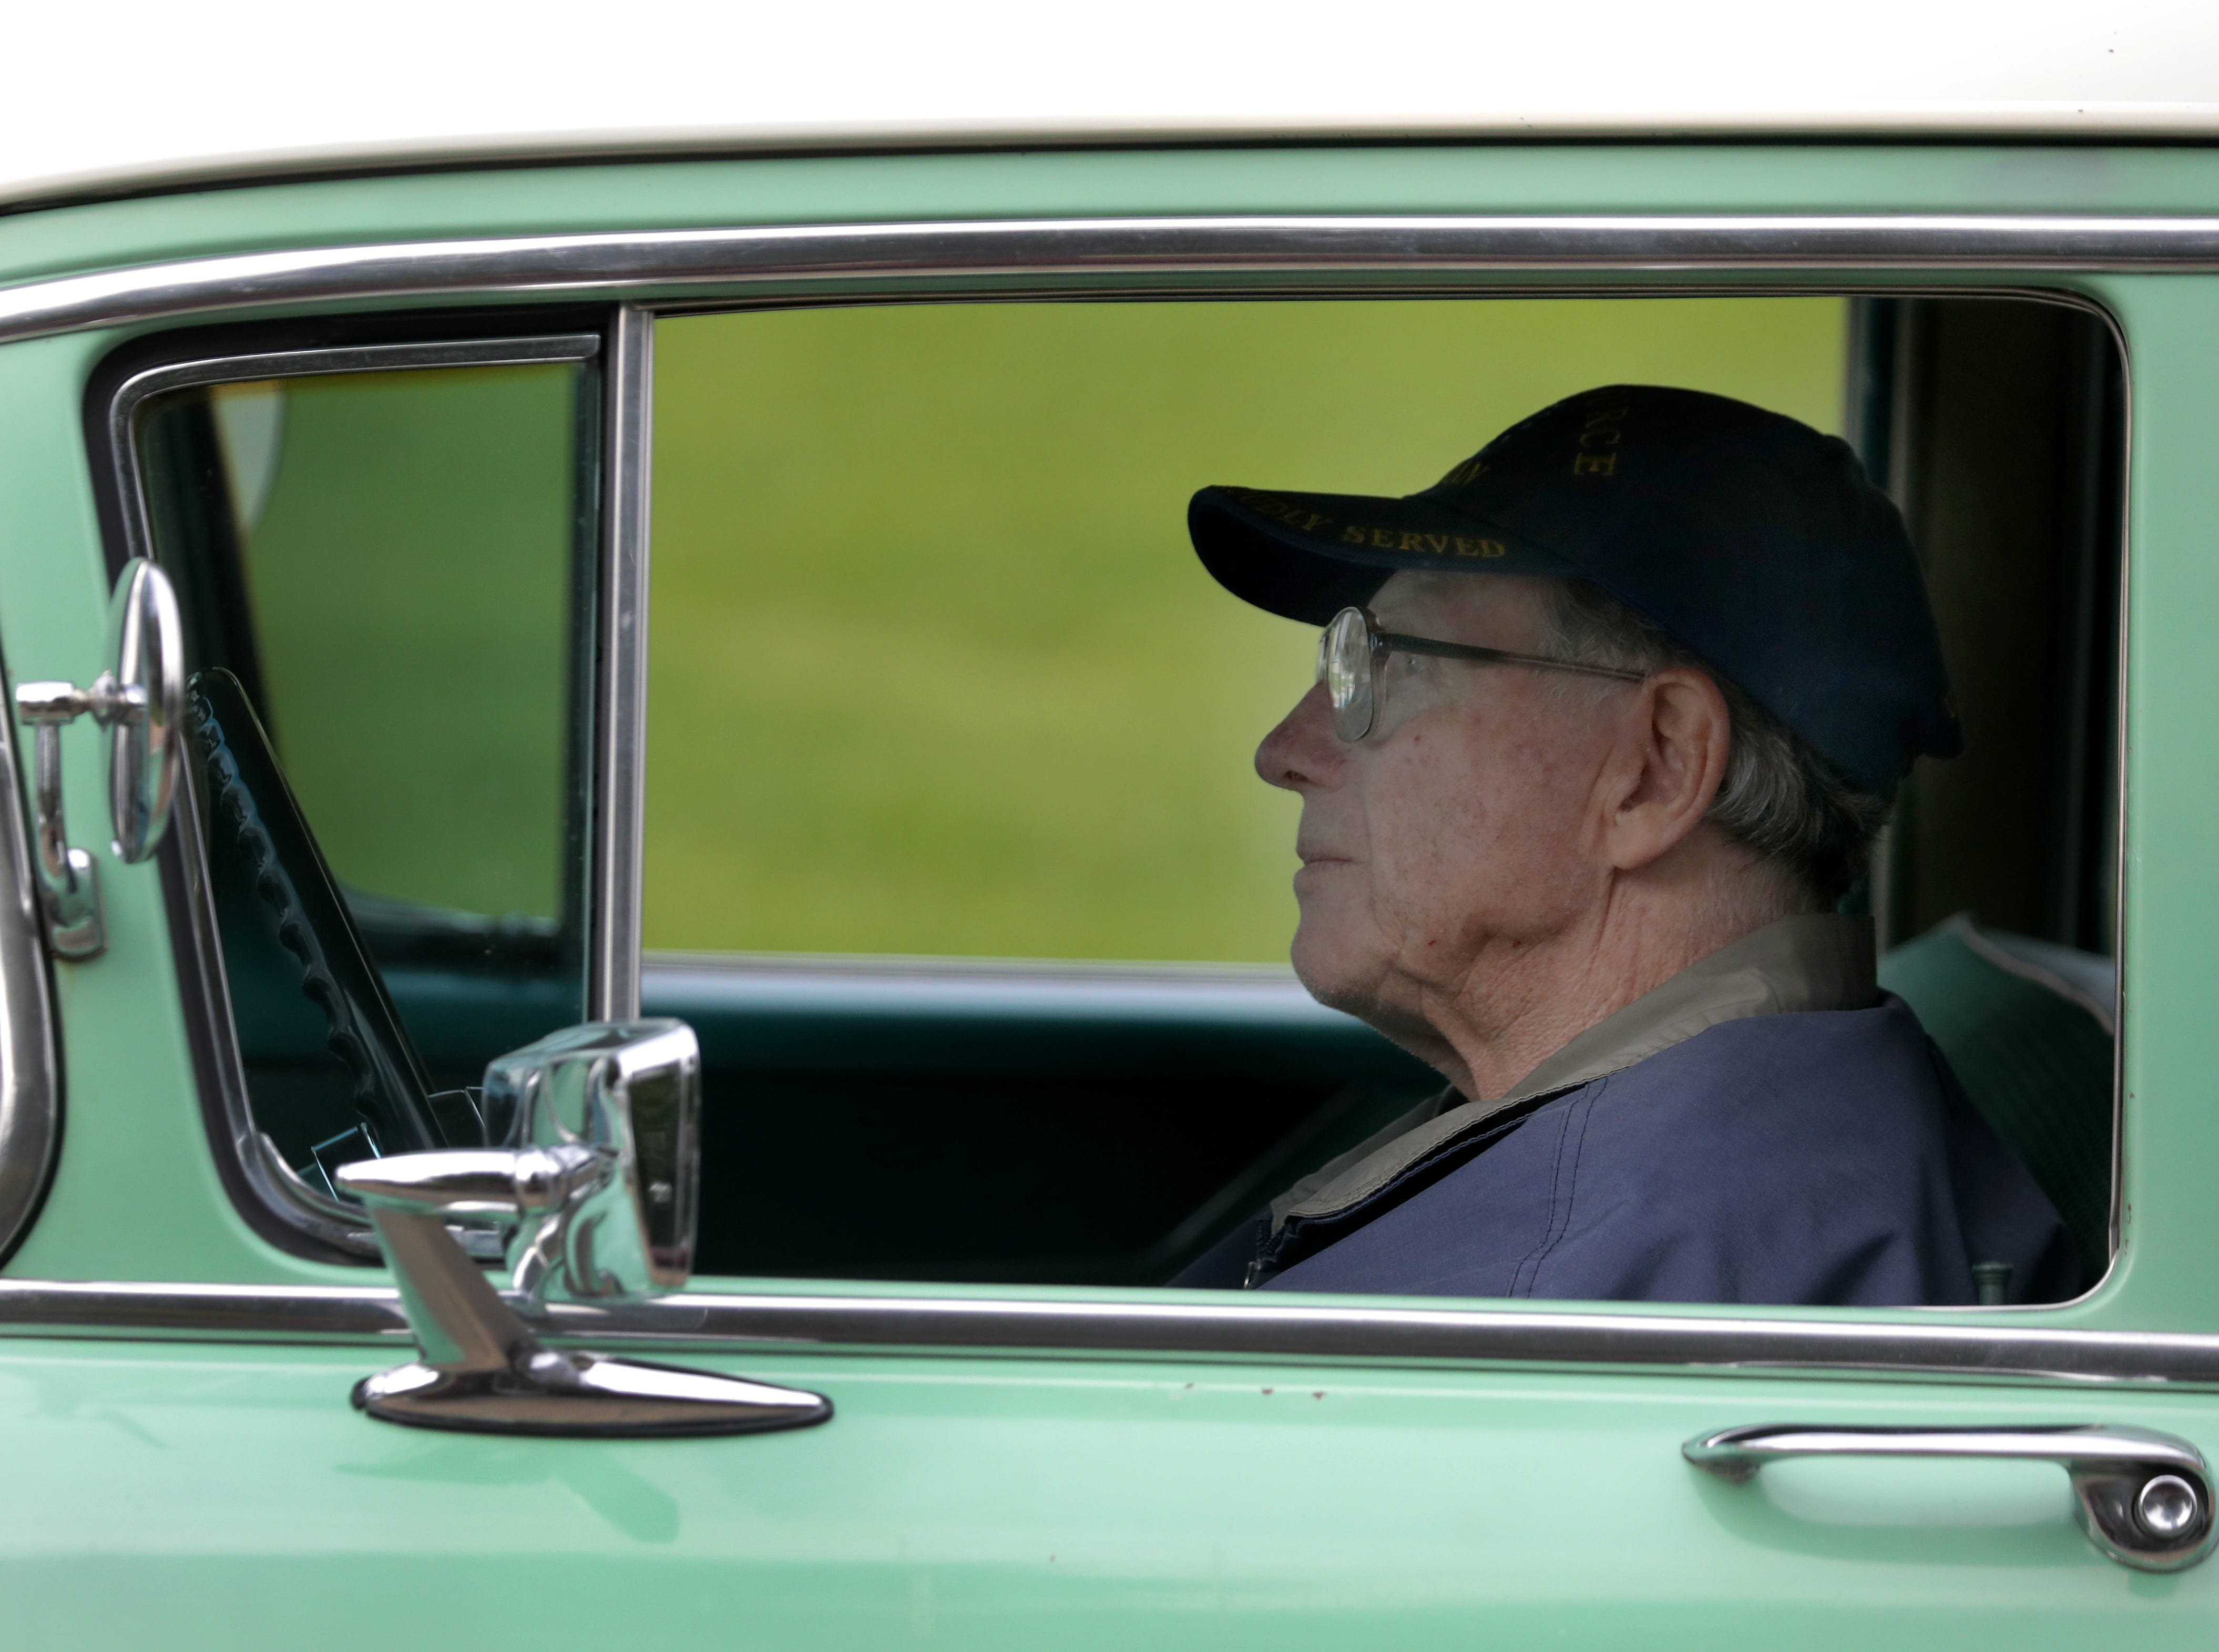 Vern Rieckmann waits to stage his 1954 Buick Century during the annual License to Cruise car show on Friday, September 28, 2018, on College Ave. in Appleton, Wis.